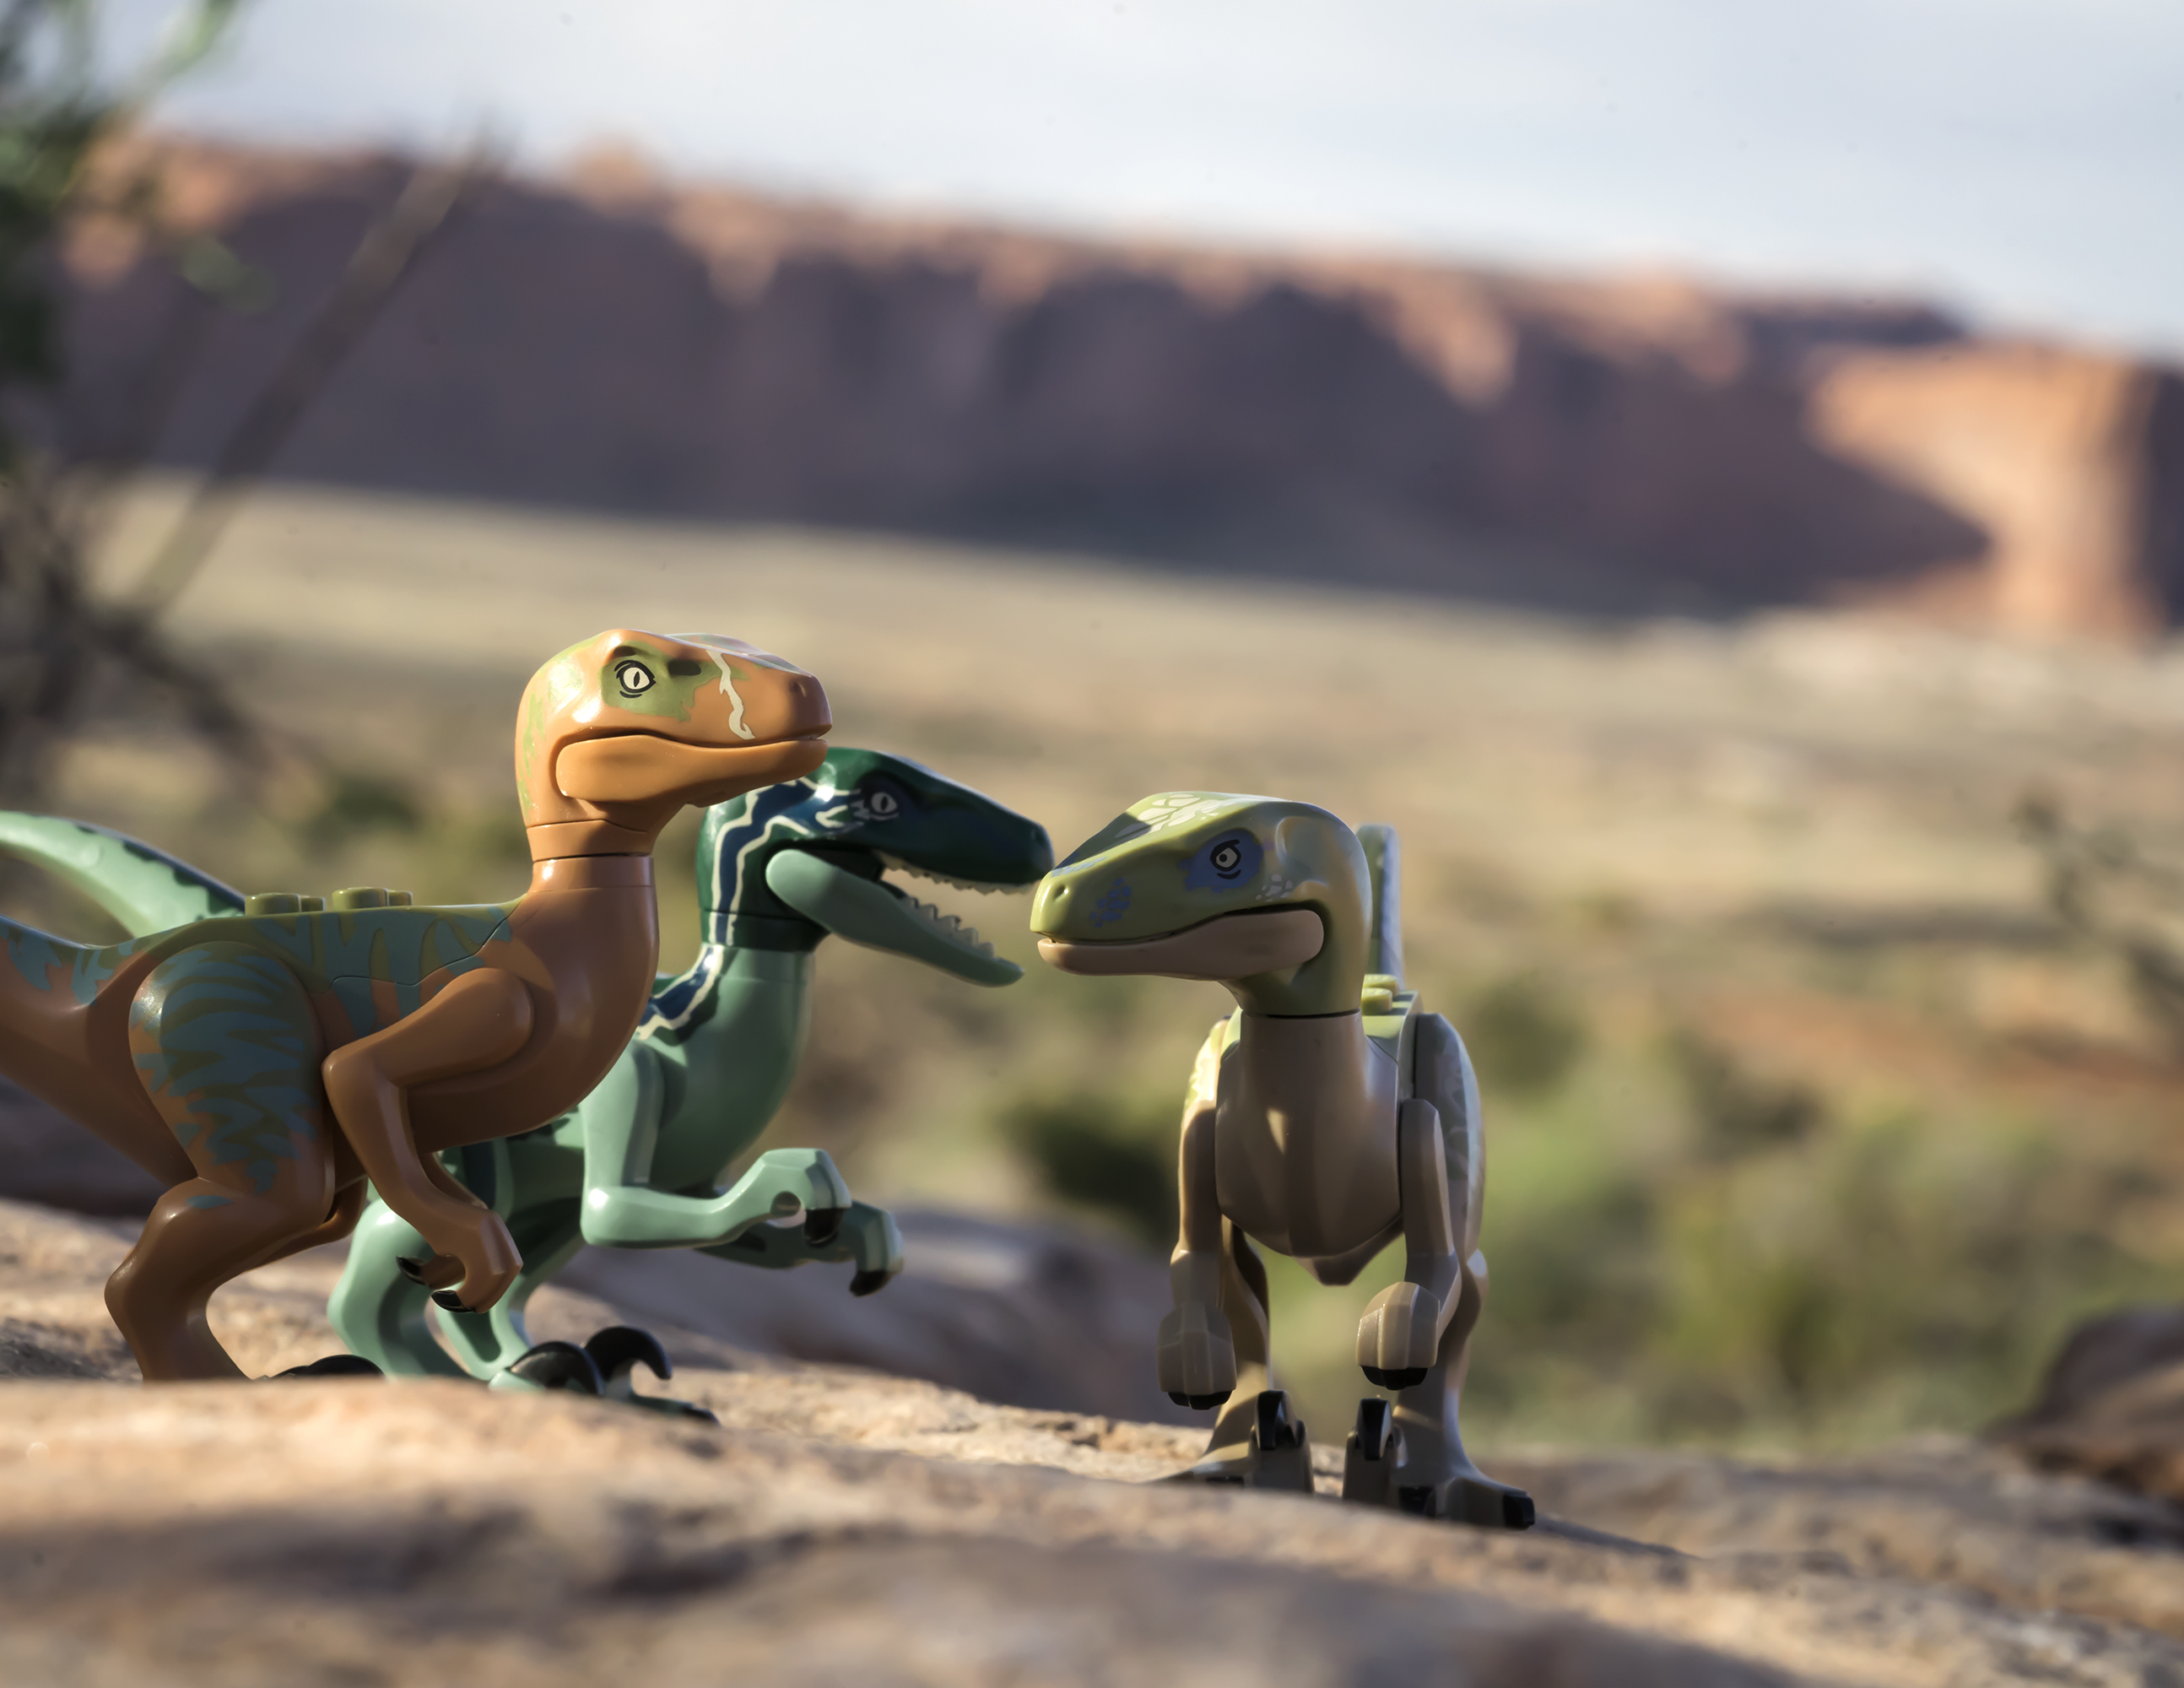 three lego raptors on a rocky outcrop with red rocks in the background.